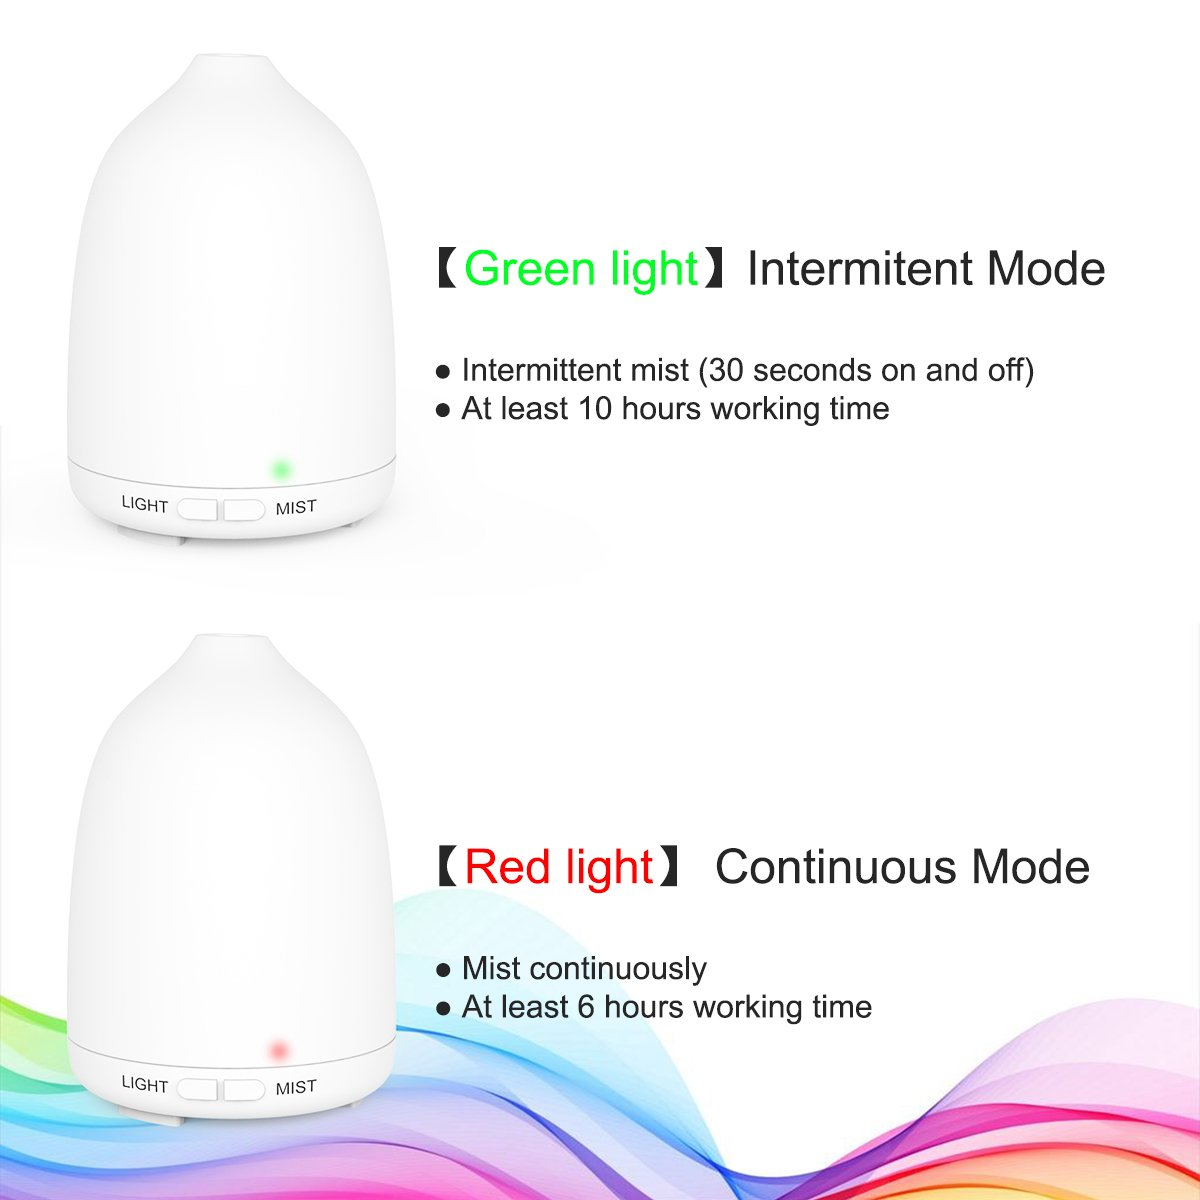 Soft Digits 120 ml Essential Oil Diffuser, Portable Ultrasonic Aromatherapy Diffuser Cool Mist Humidifier with Waterless Auto Shut-off, 7 Color LED, 2 PACK in ONE Box by Soft digits (Image #4)